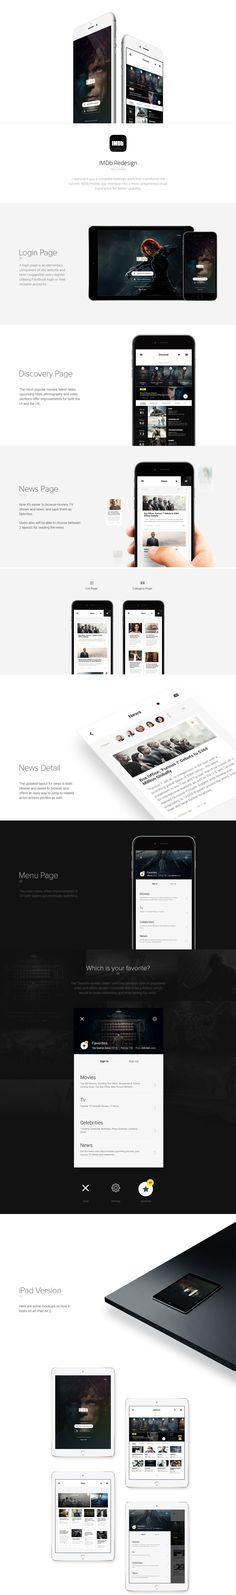 Select images to pin - Pin Them All